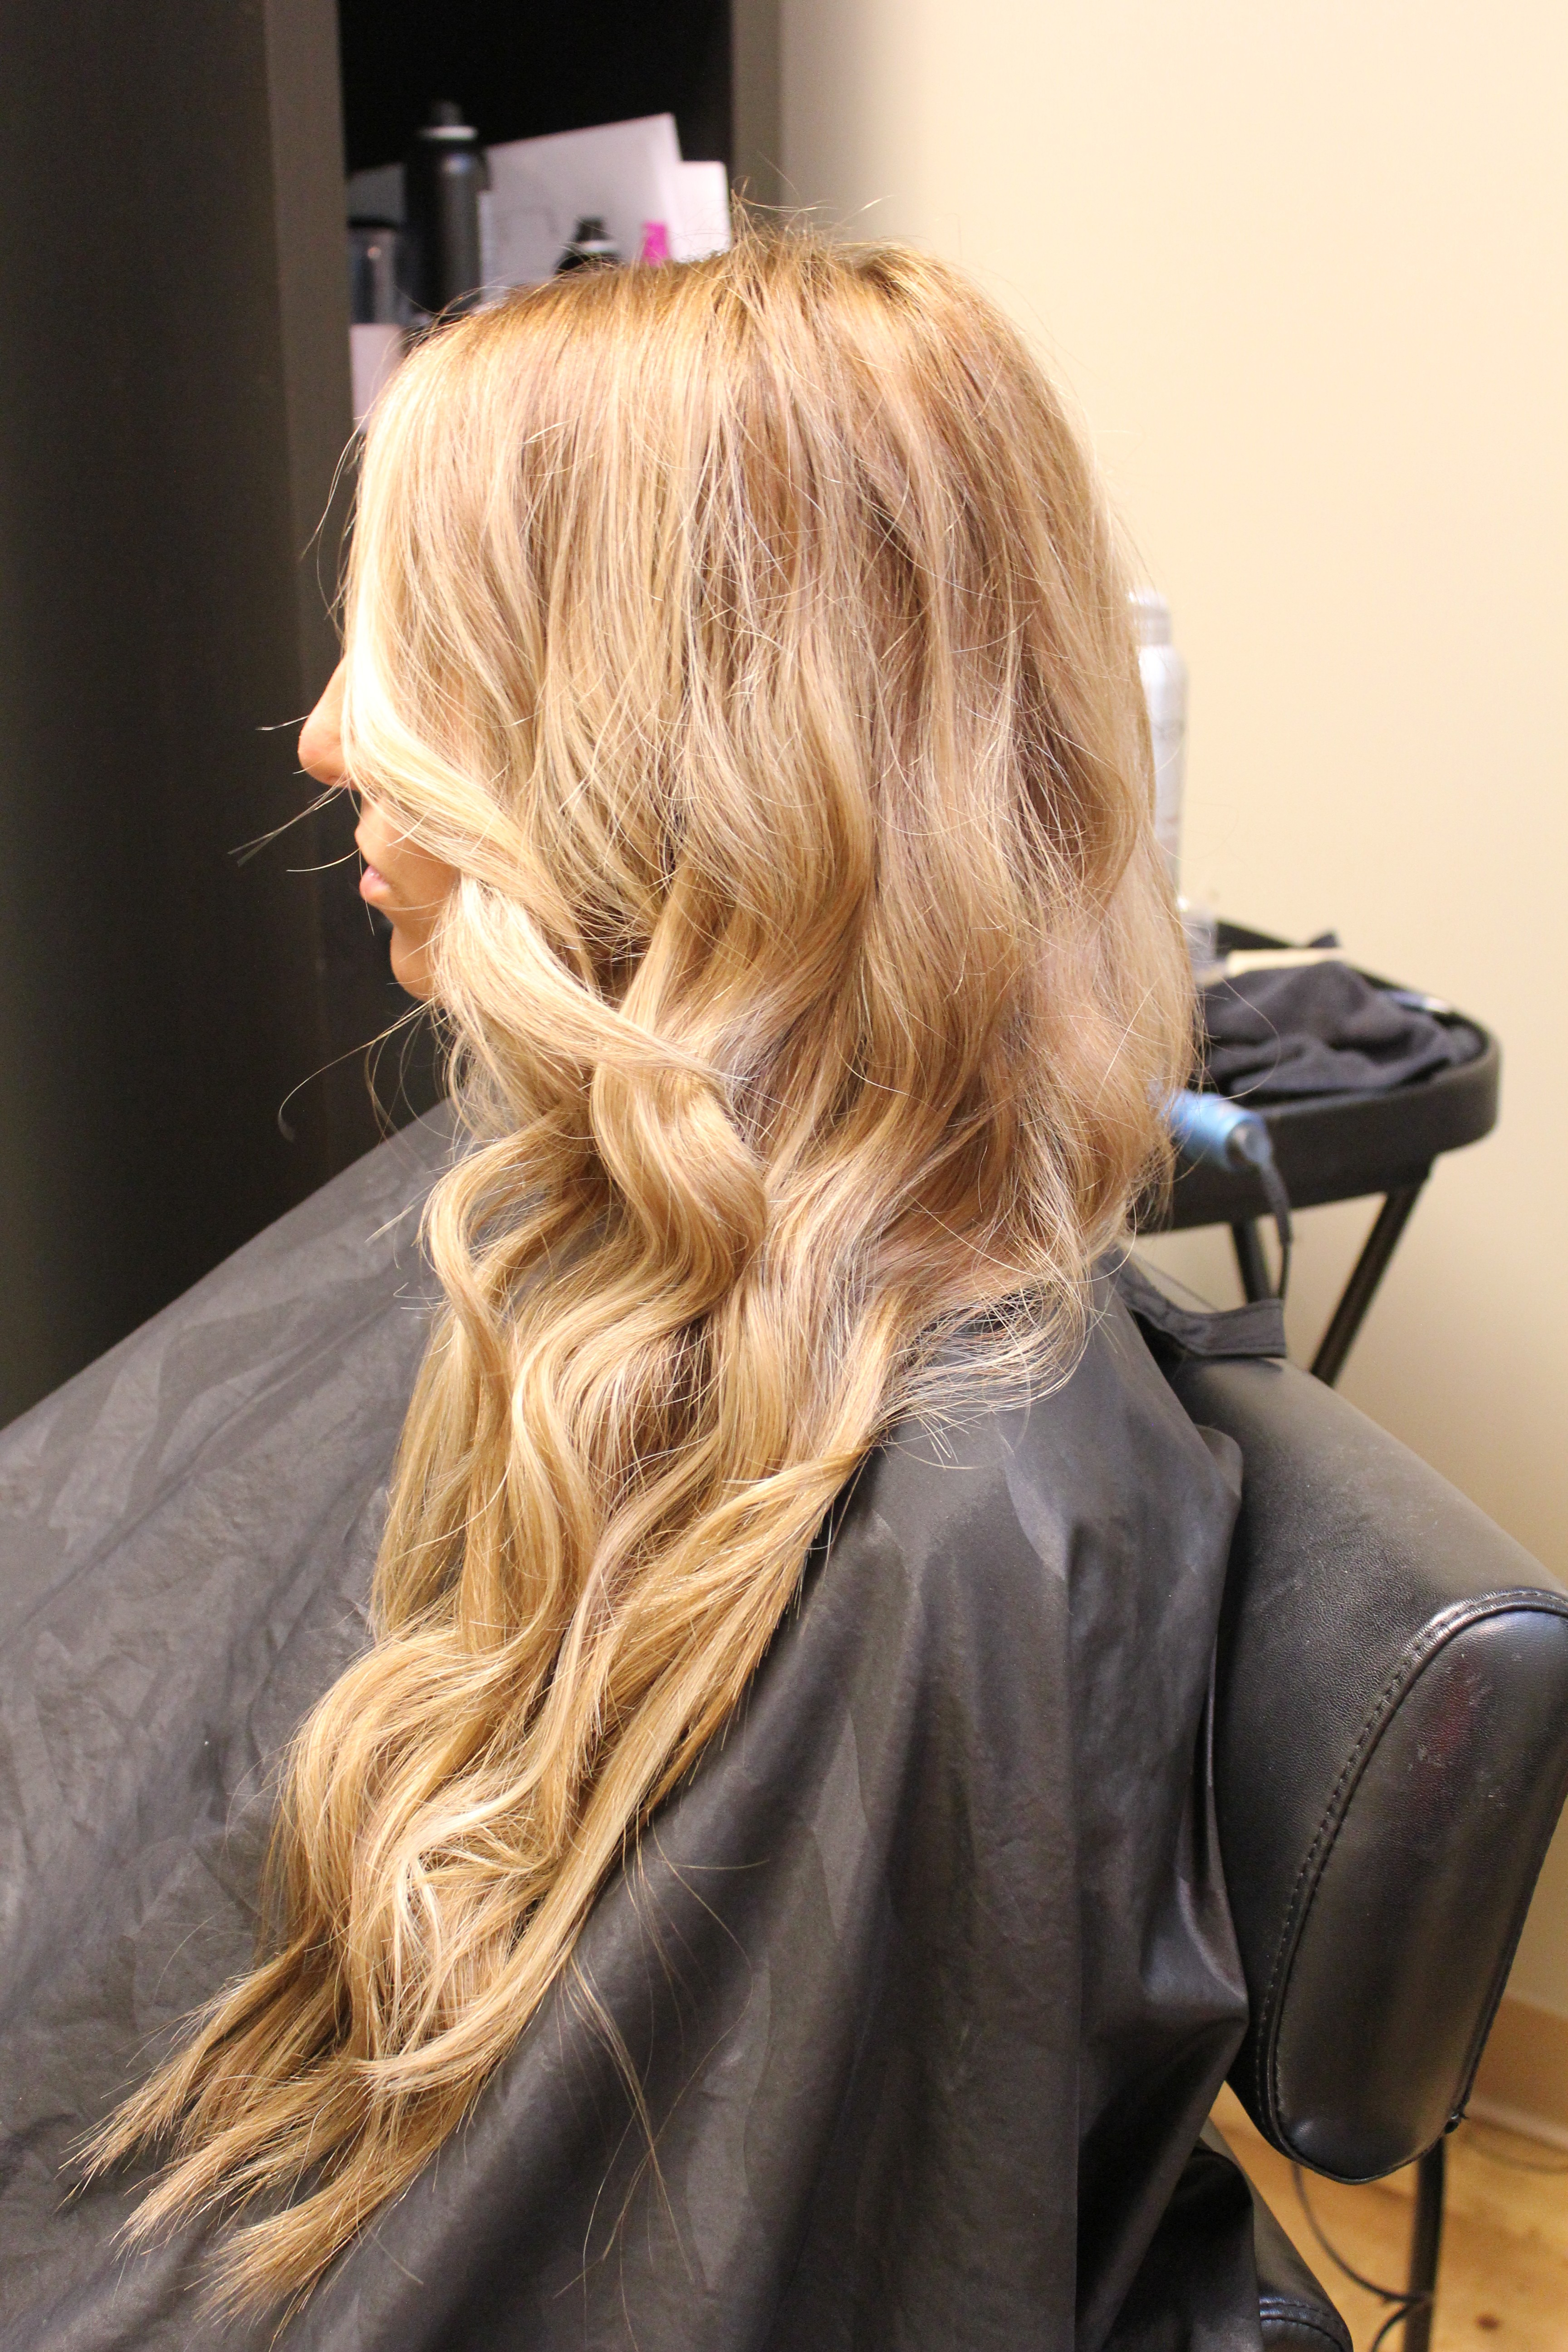 Natural beaded row hair extensions dkw styling natural beaded row hair extension training online available to licensed cosmetologist click here for more details pmusecretfo Image collections